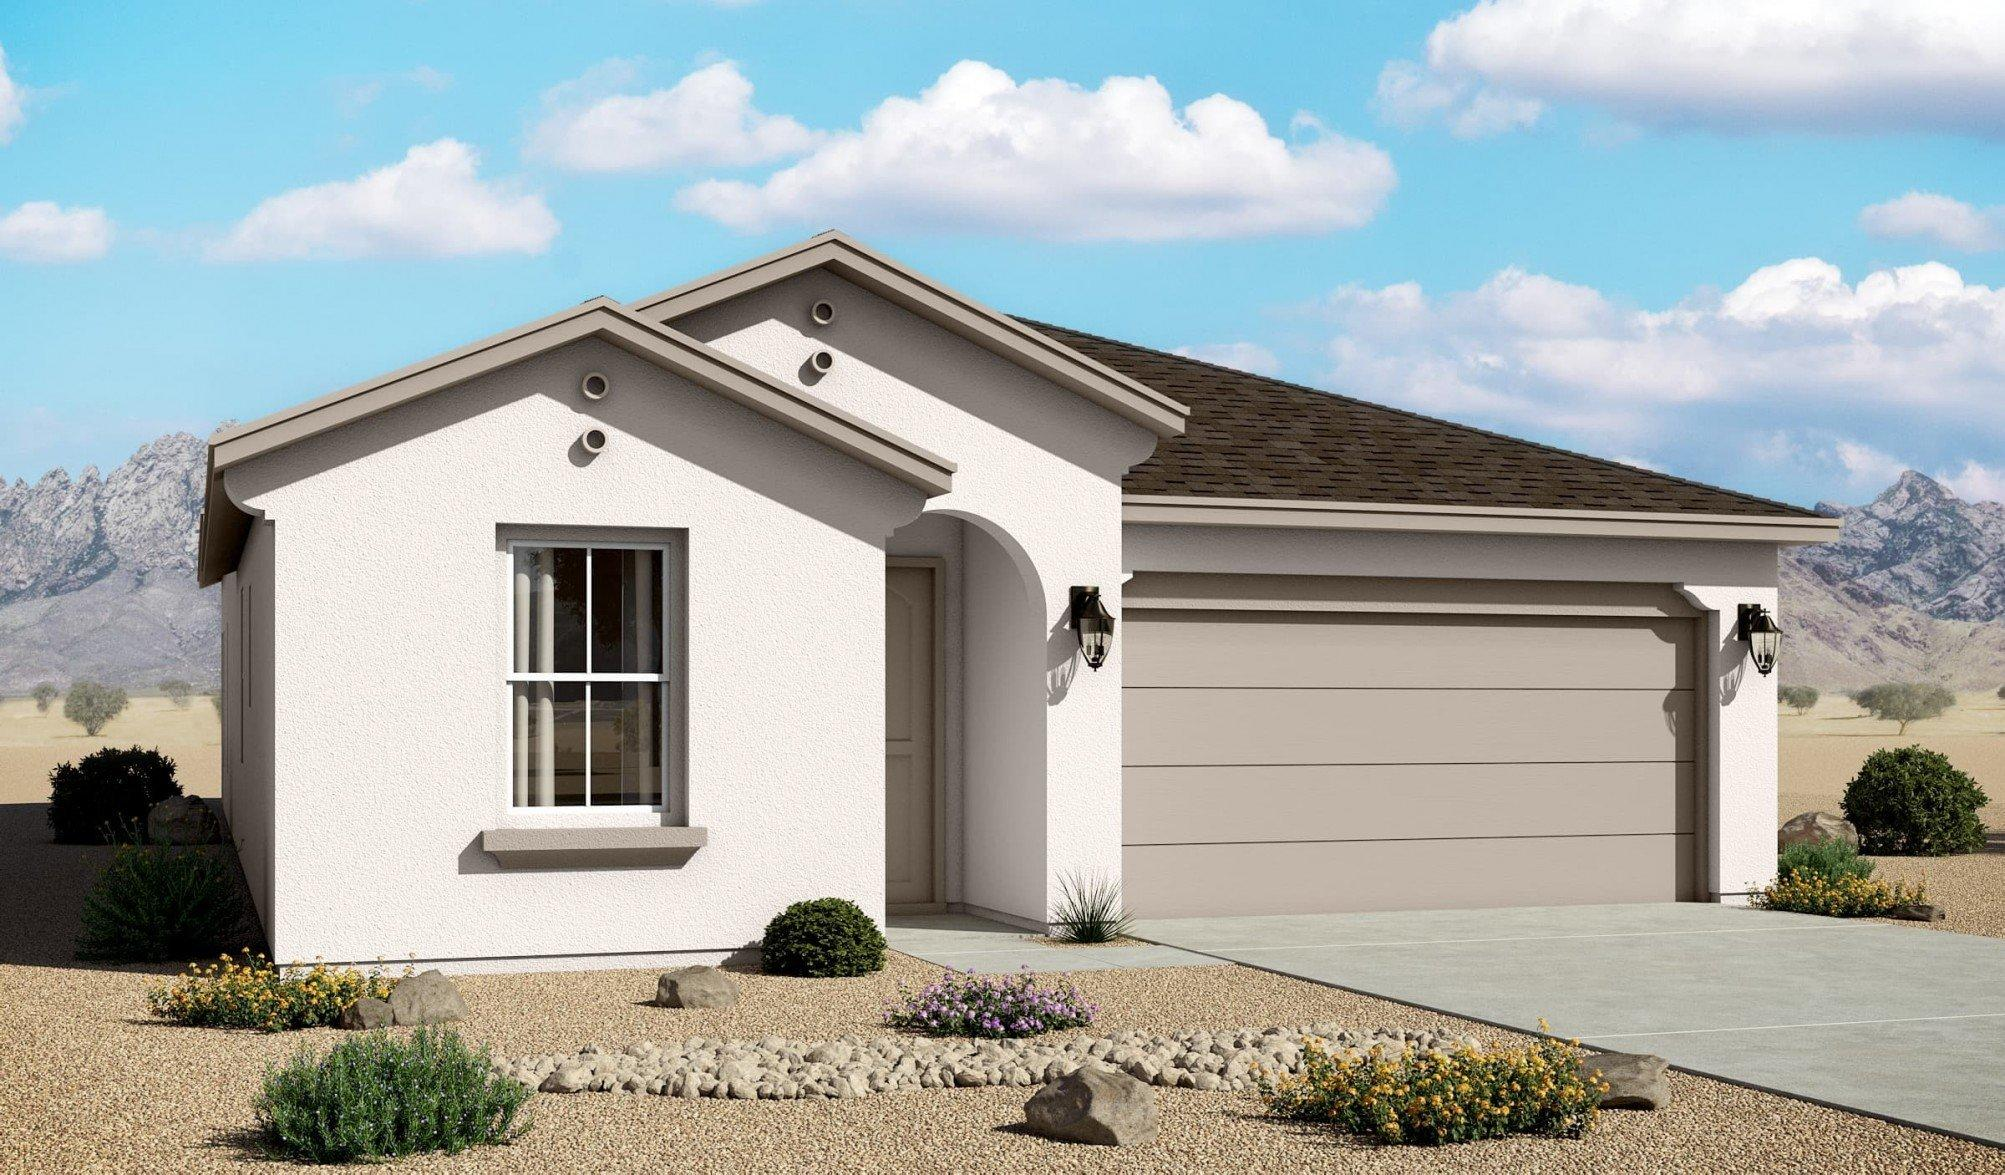 1907 Plan  Estimated Completion is March.This home features,   Gournet kitchen with Granite Countetops, Expresso cabinets, Glass tile Backsplash, Pot filler,   36'' Fireplace.  8 Blade Living Room Ceiling Fan,  12x24 Light Gray Floor Tile,  Rain Shower is master bath.